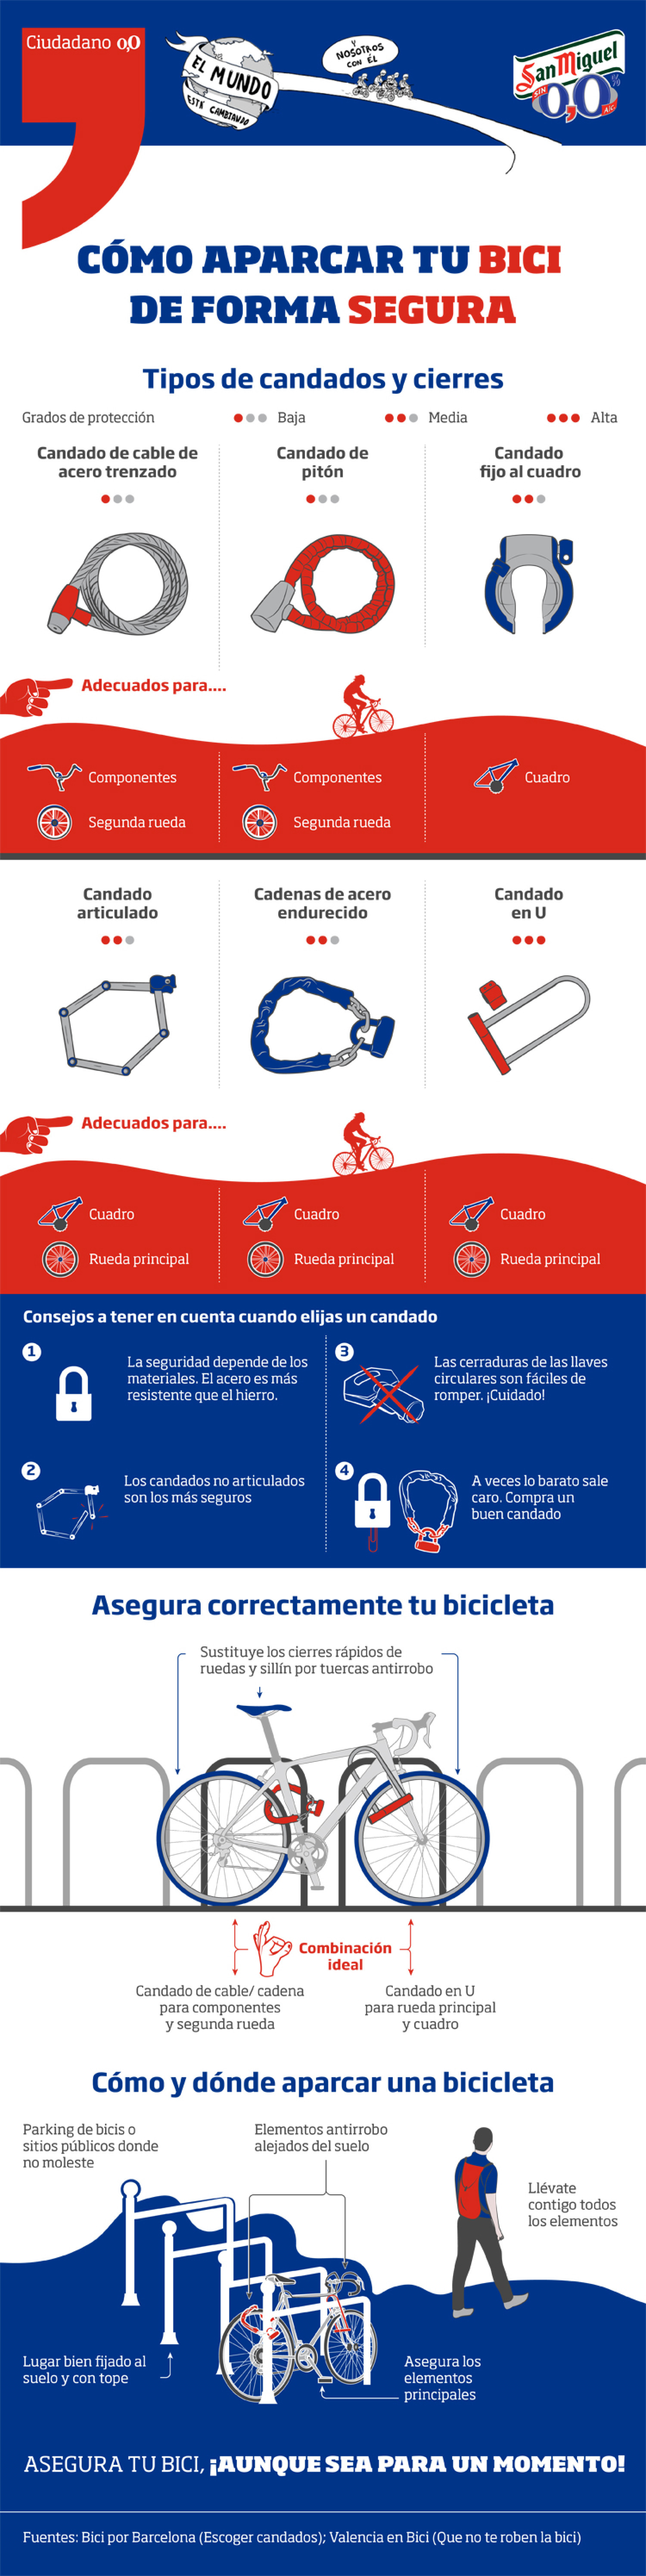 How to park your bicycle in a secure way Infographic